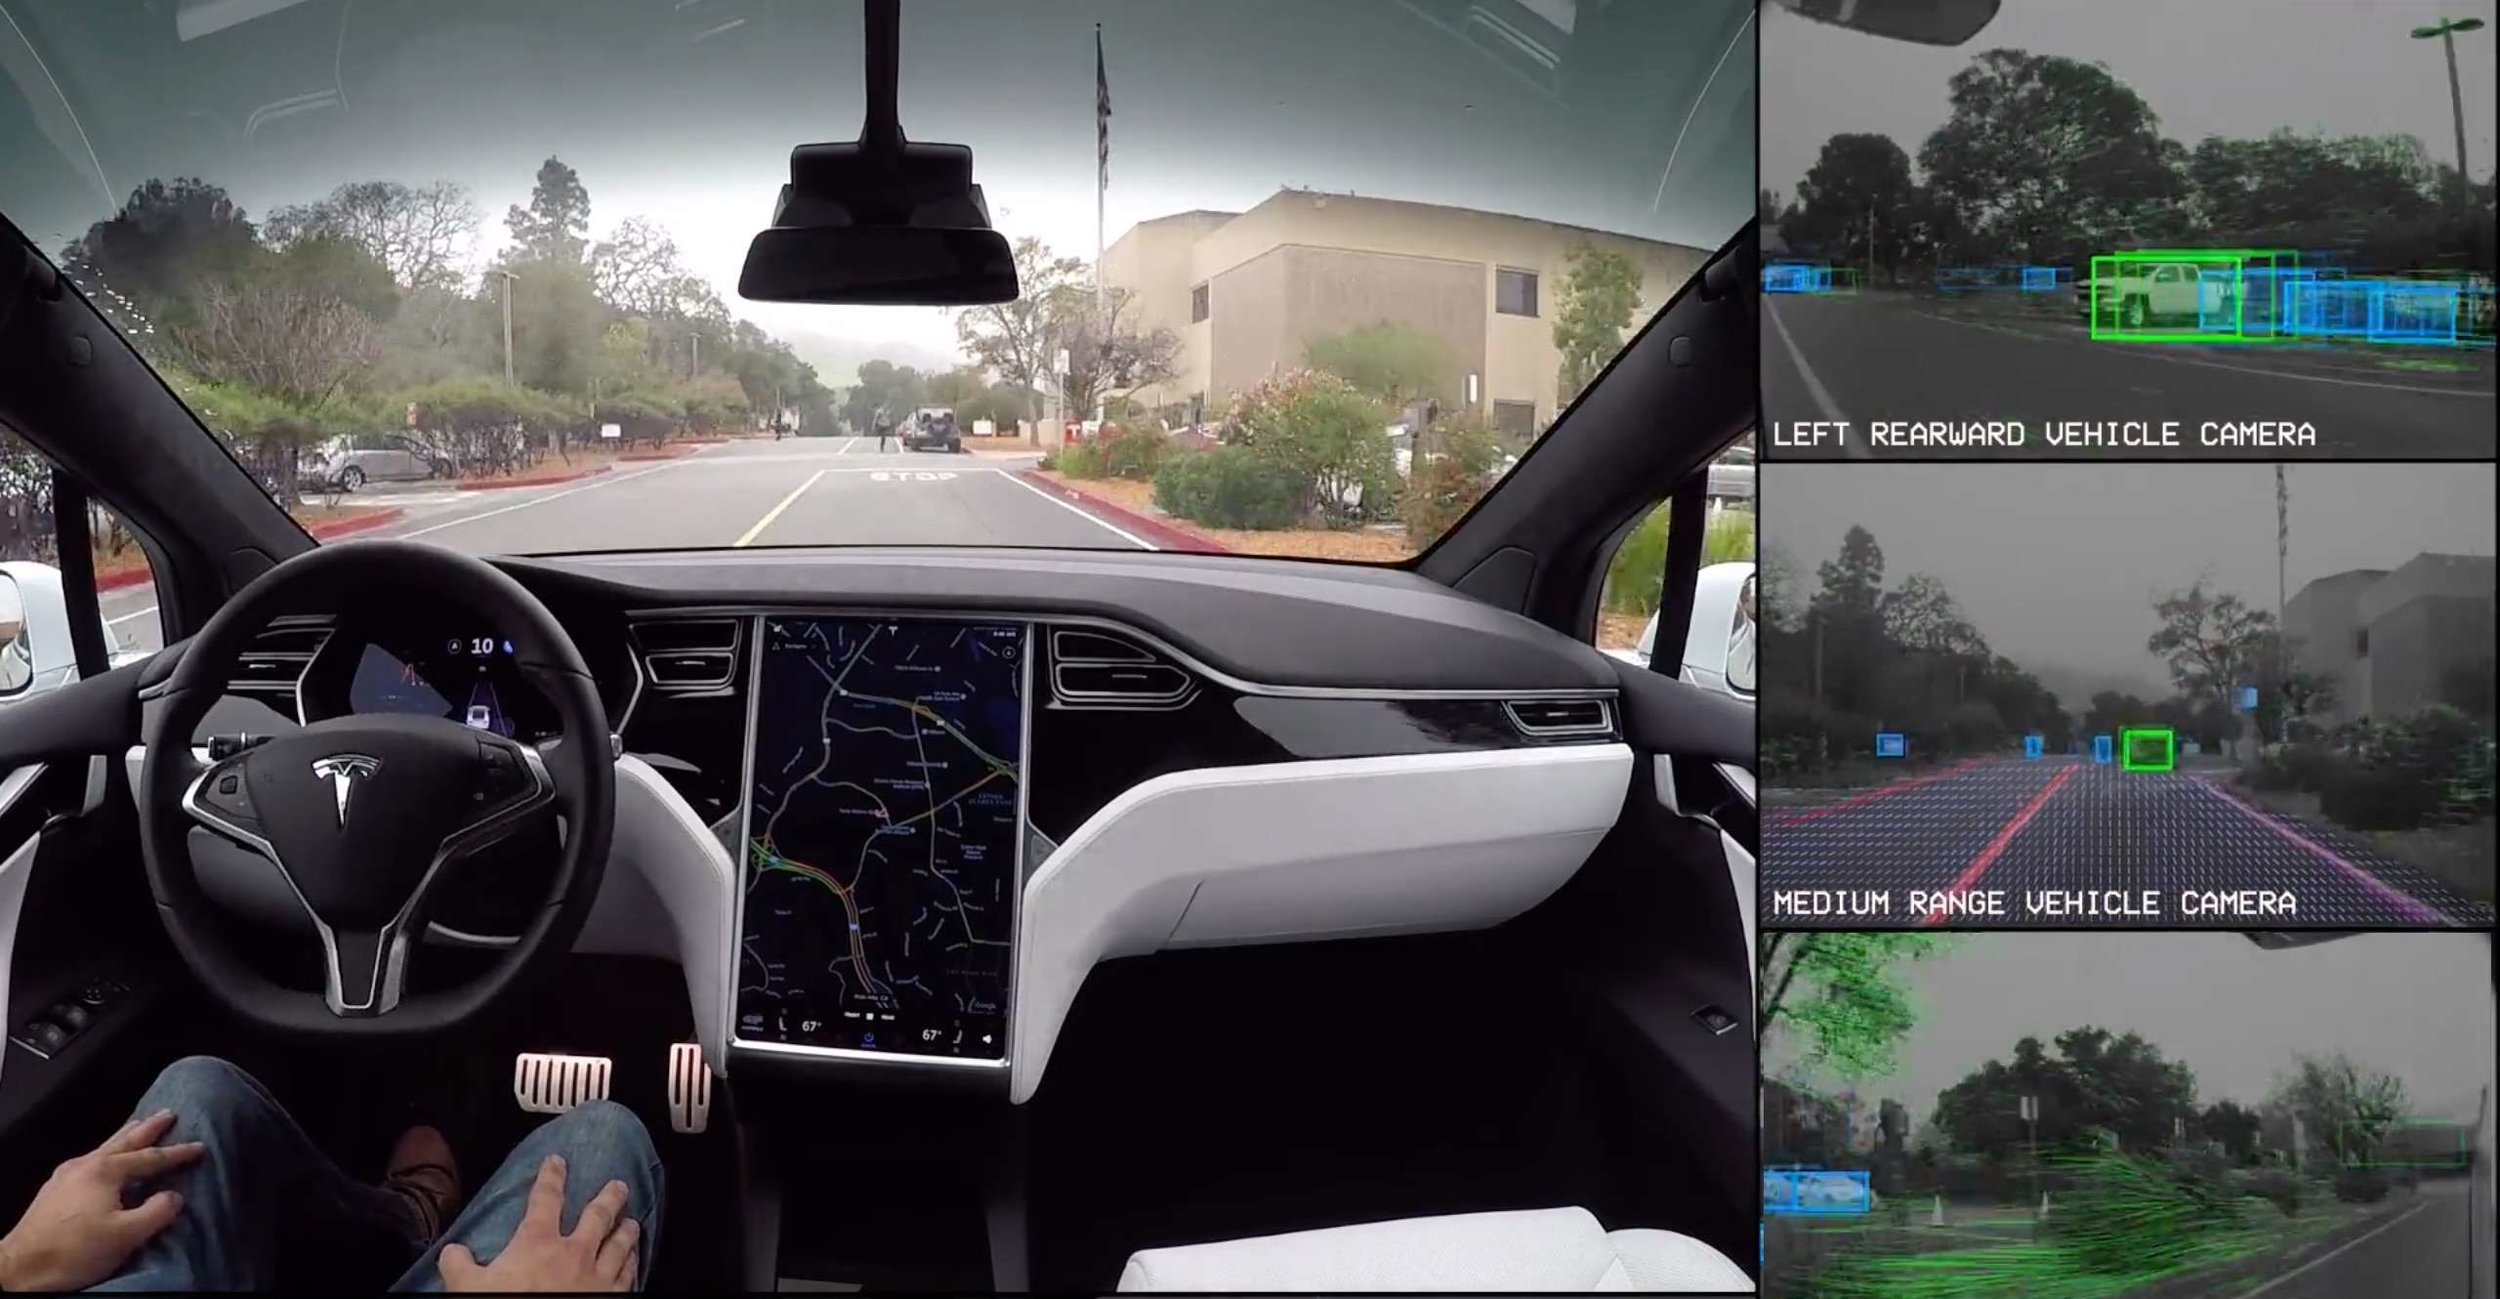 Tesla is another car manufacturer working on autonomous vehicles. Image credit - Tesla.